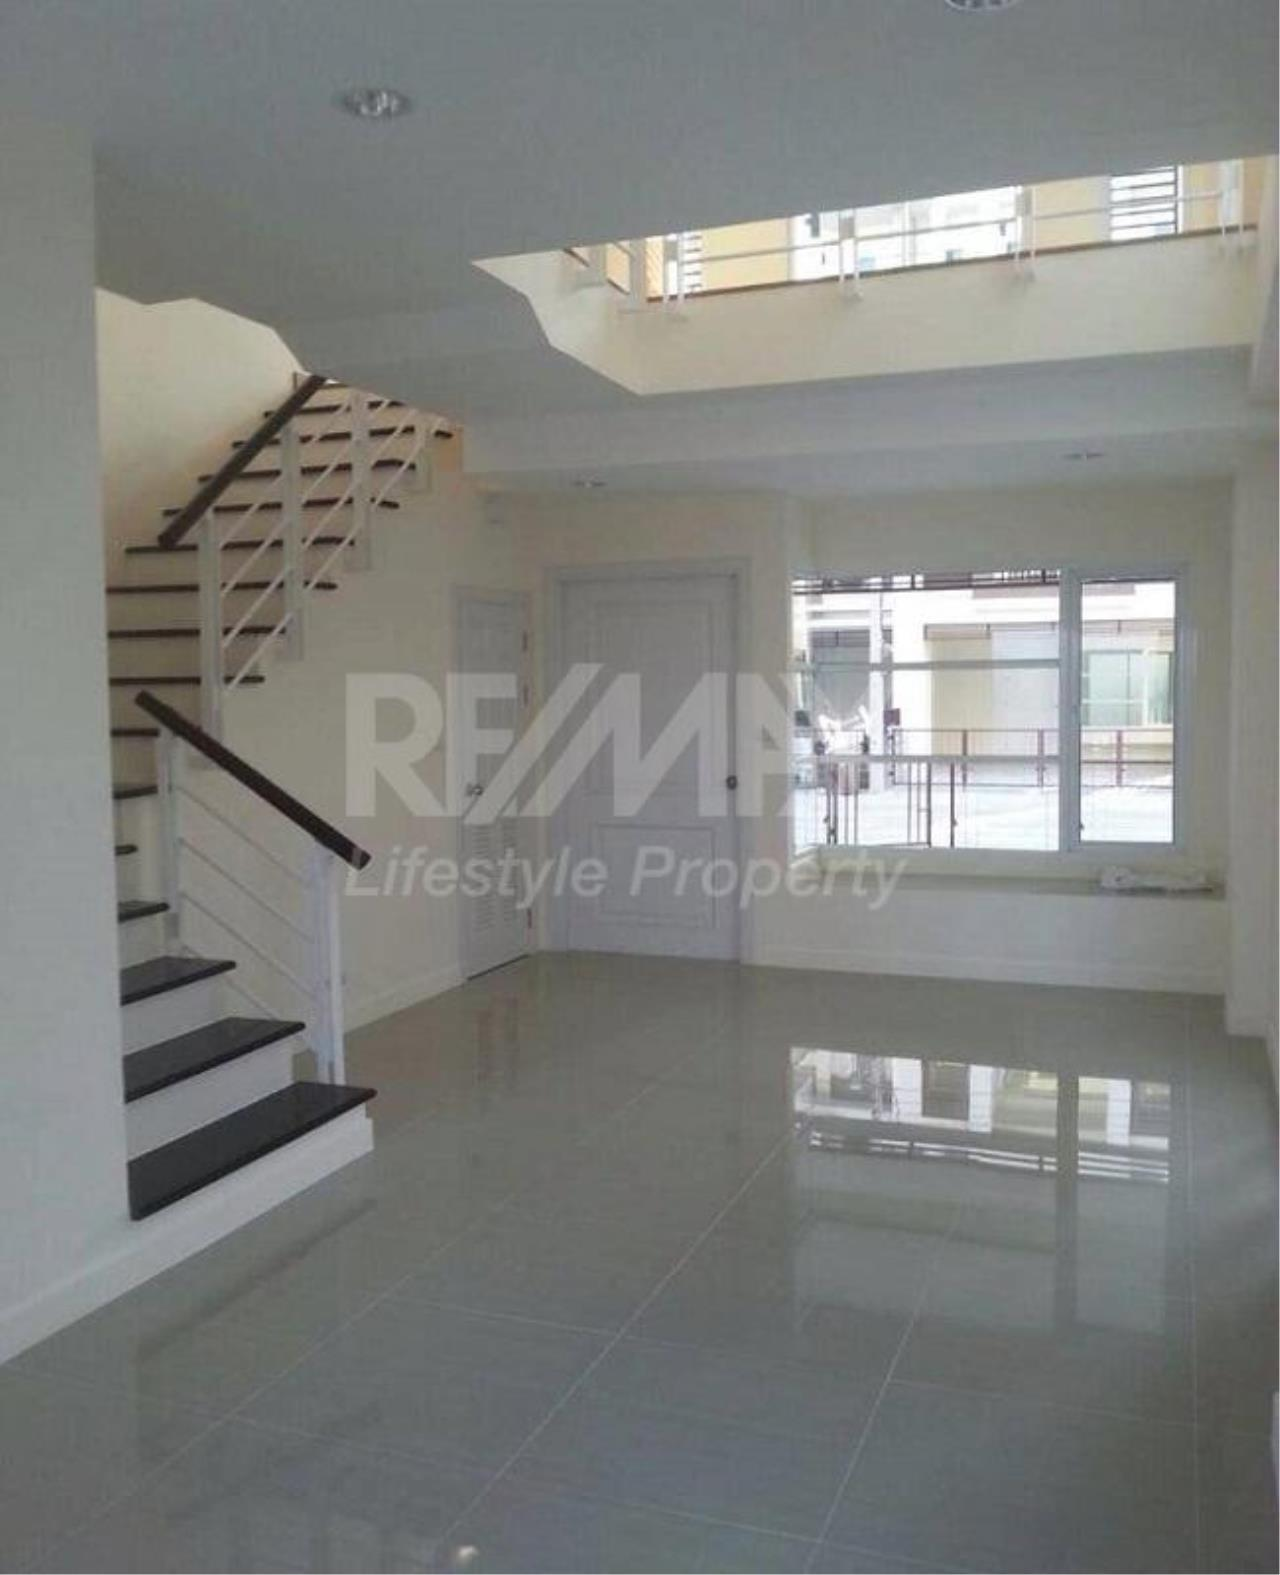 RE/MAX LifeStyle Property Agency's Town House Premium Place Nawamin – Ladprao 10 9